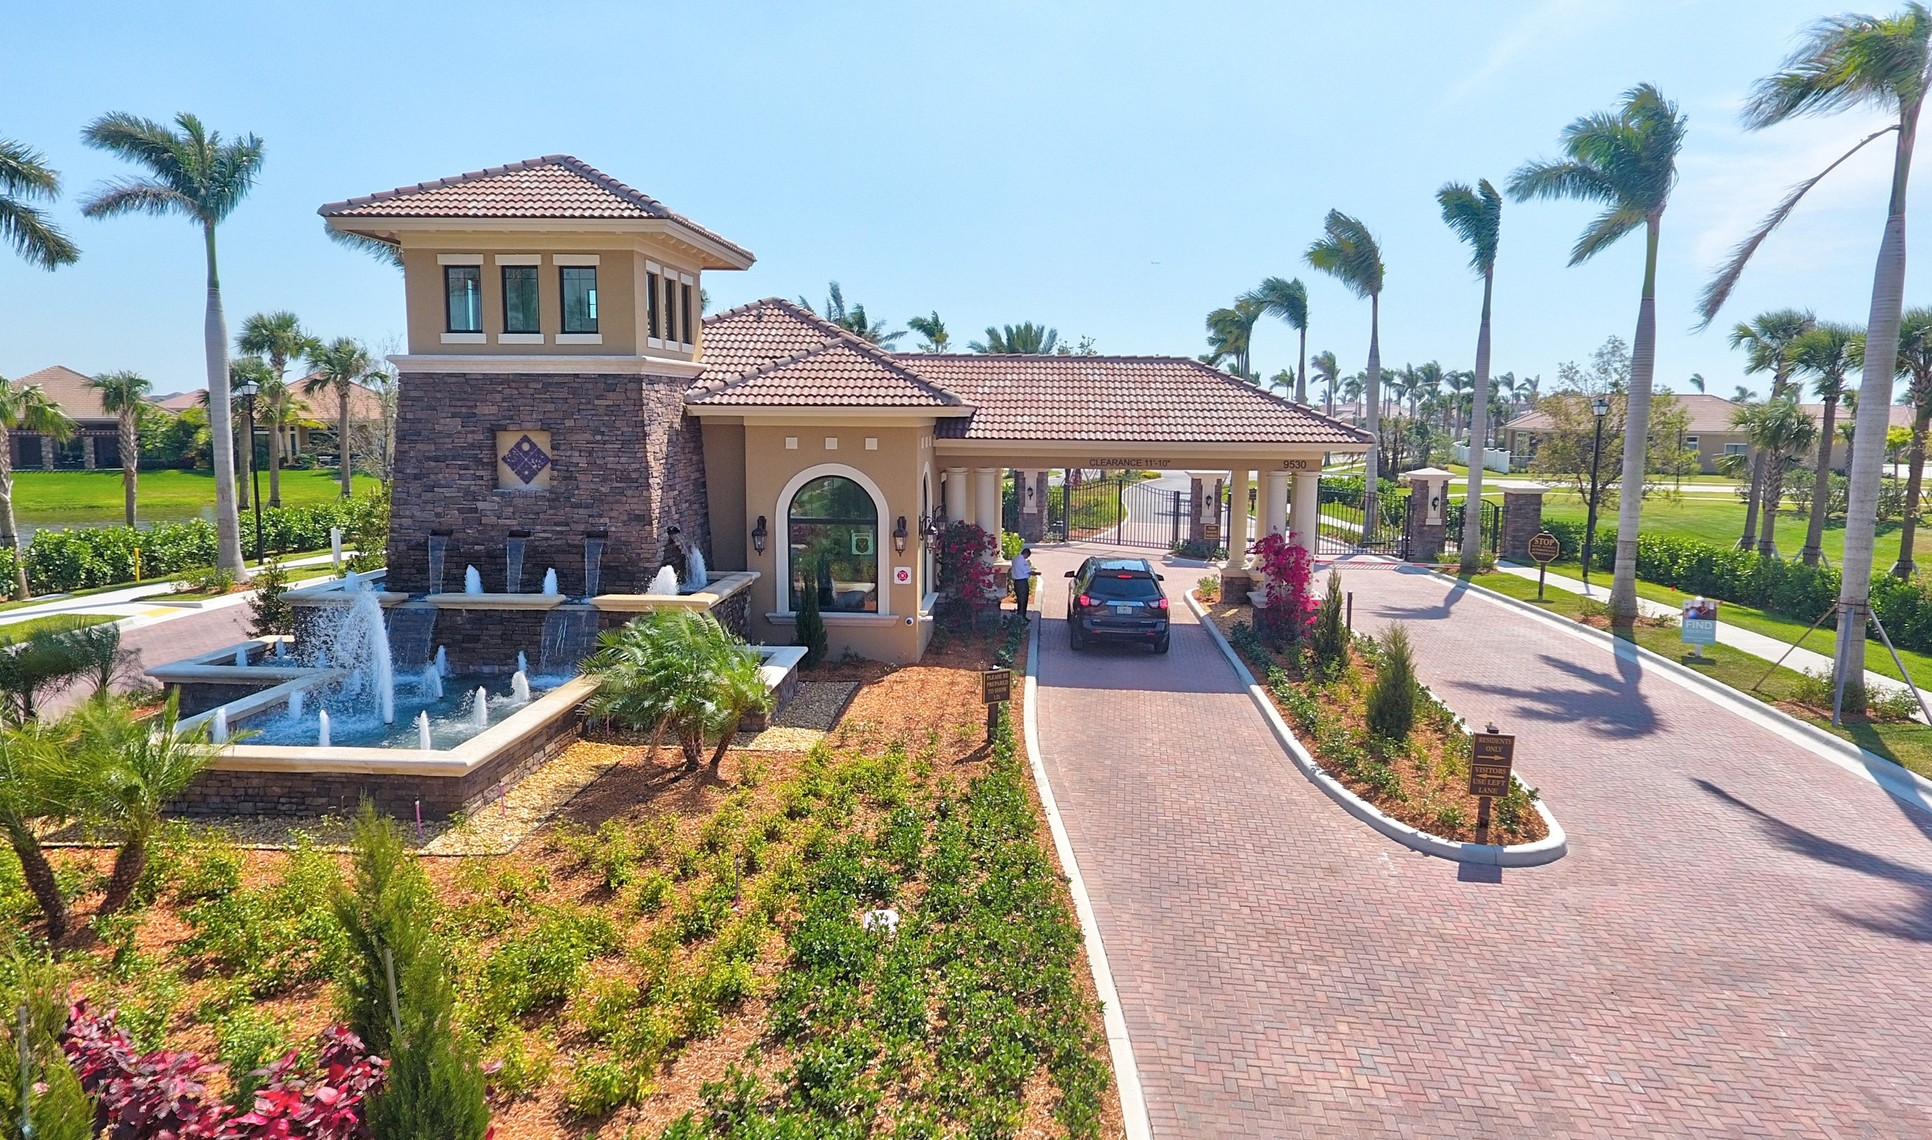 K Hovnanian S Four Seasons At Parkland In Parkland Fl New Homes By K Hovnanian S Four Seasons